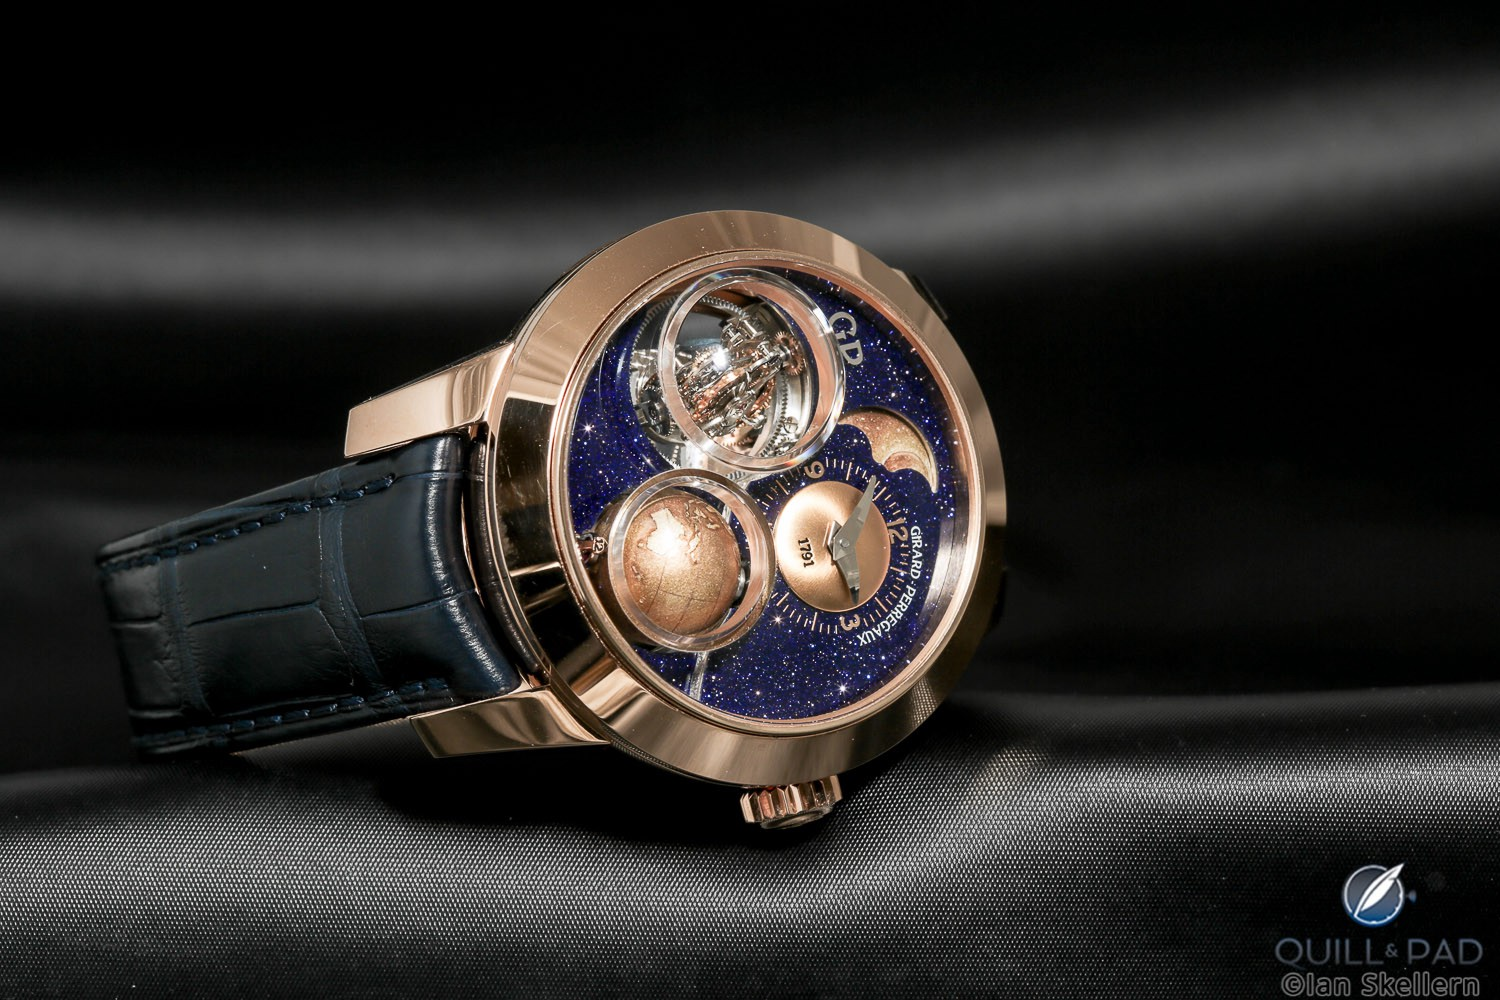 Girard-Perregaux introduced an aventurine-outfitted edition of its complicated Planetarium Tri-Axial at SIHH 2018